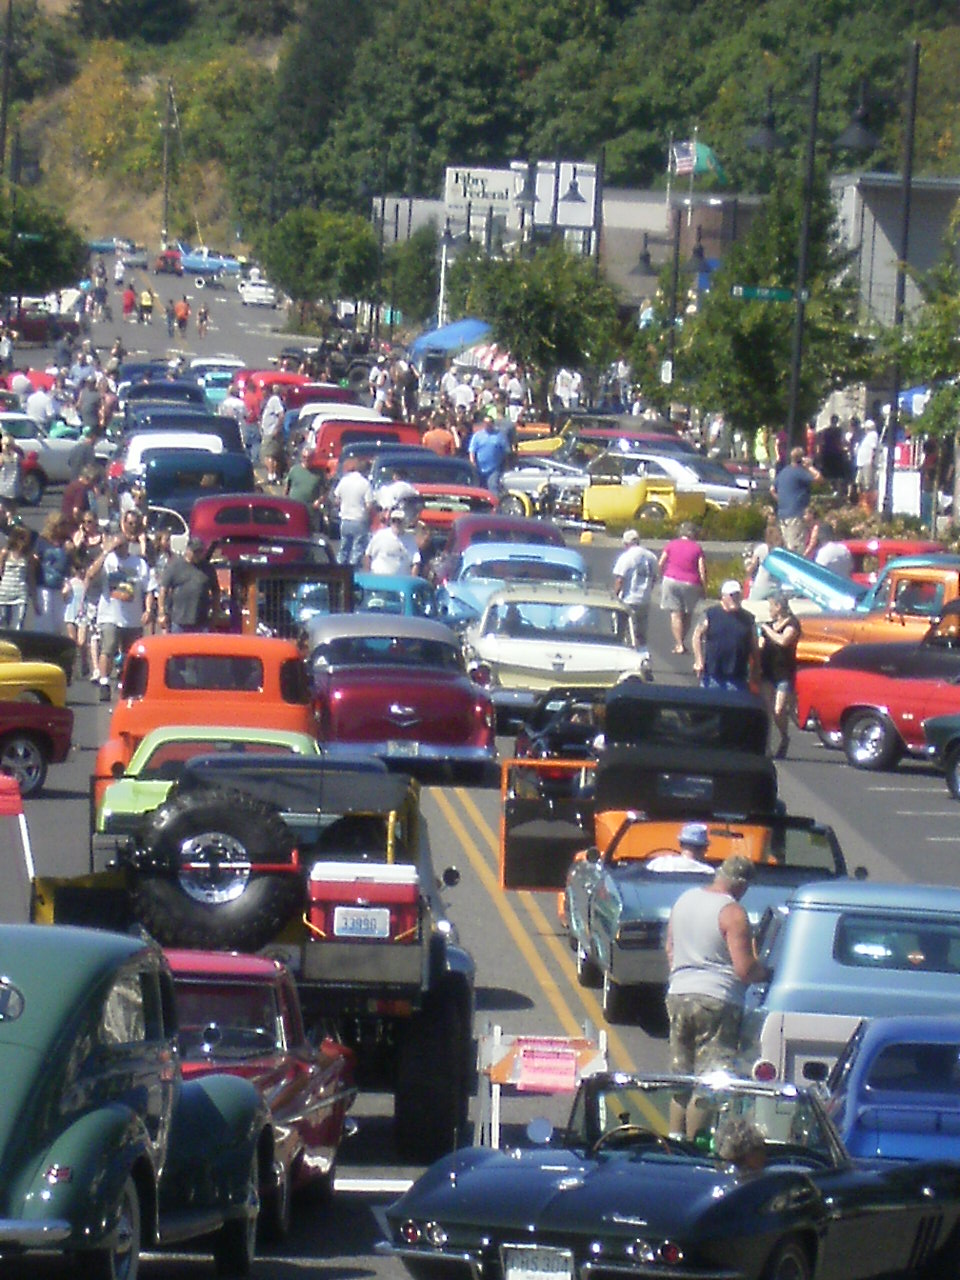 View of Parade - Car Show - August 17, 2014